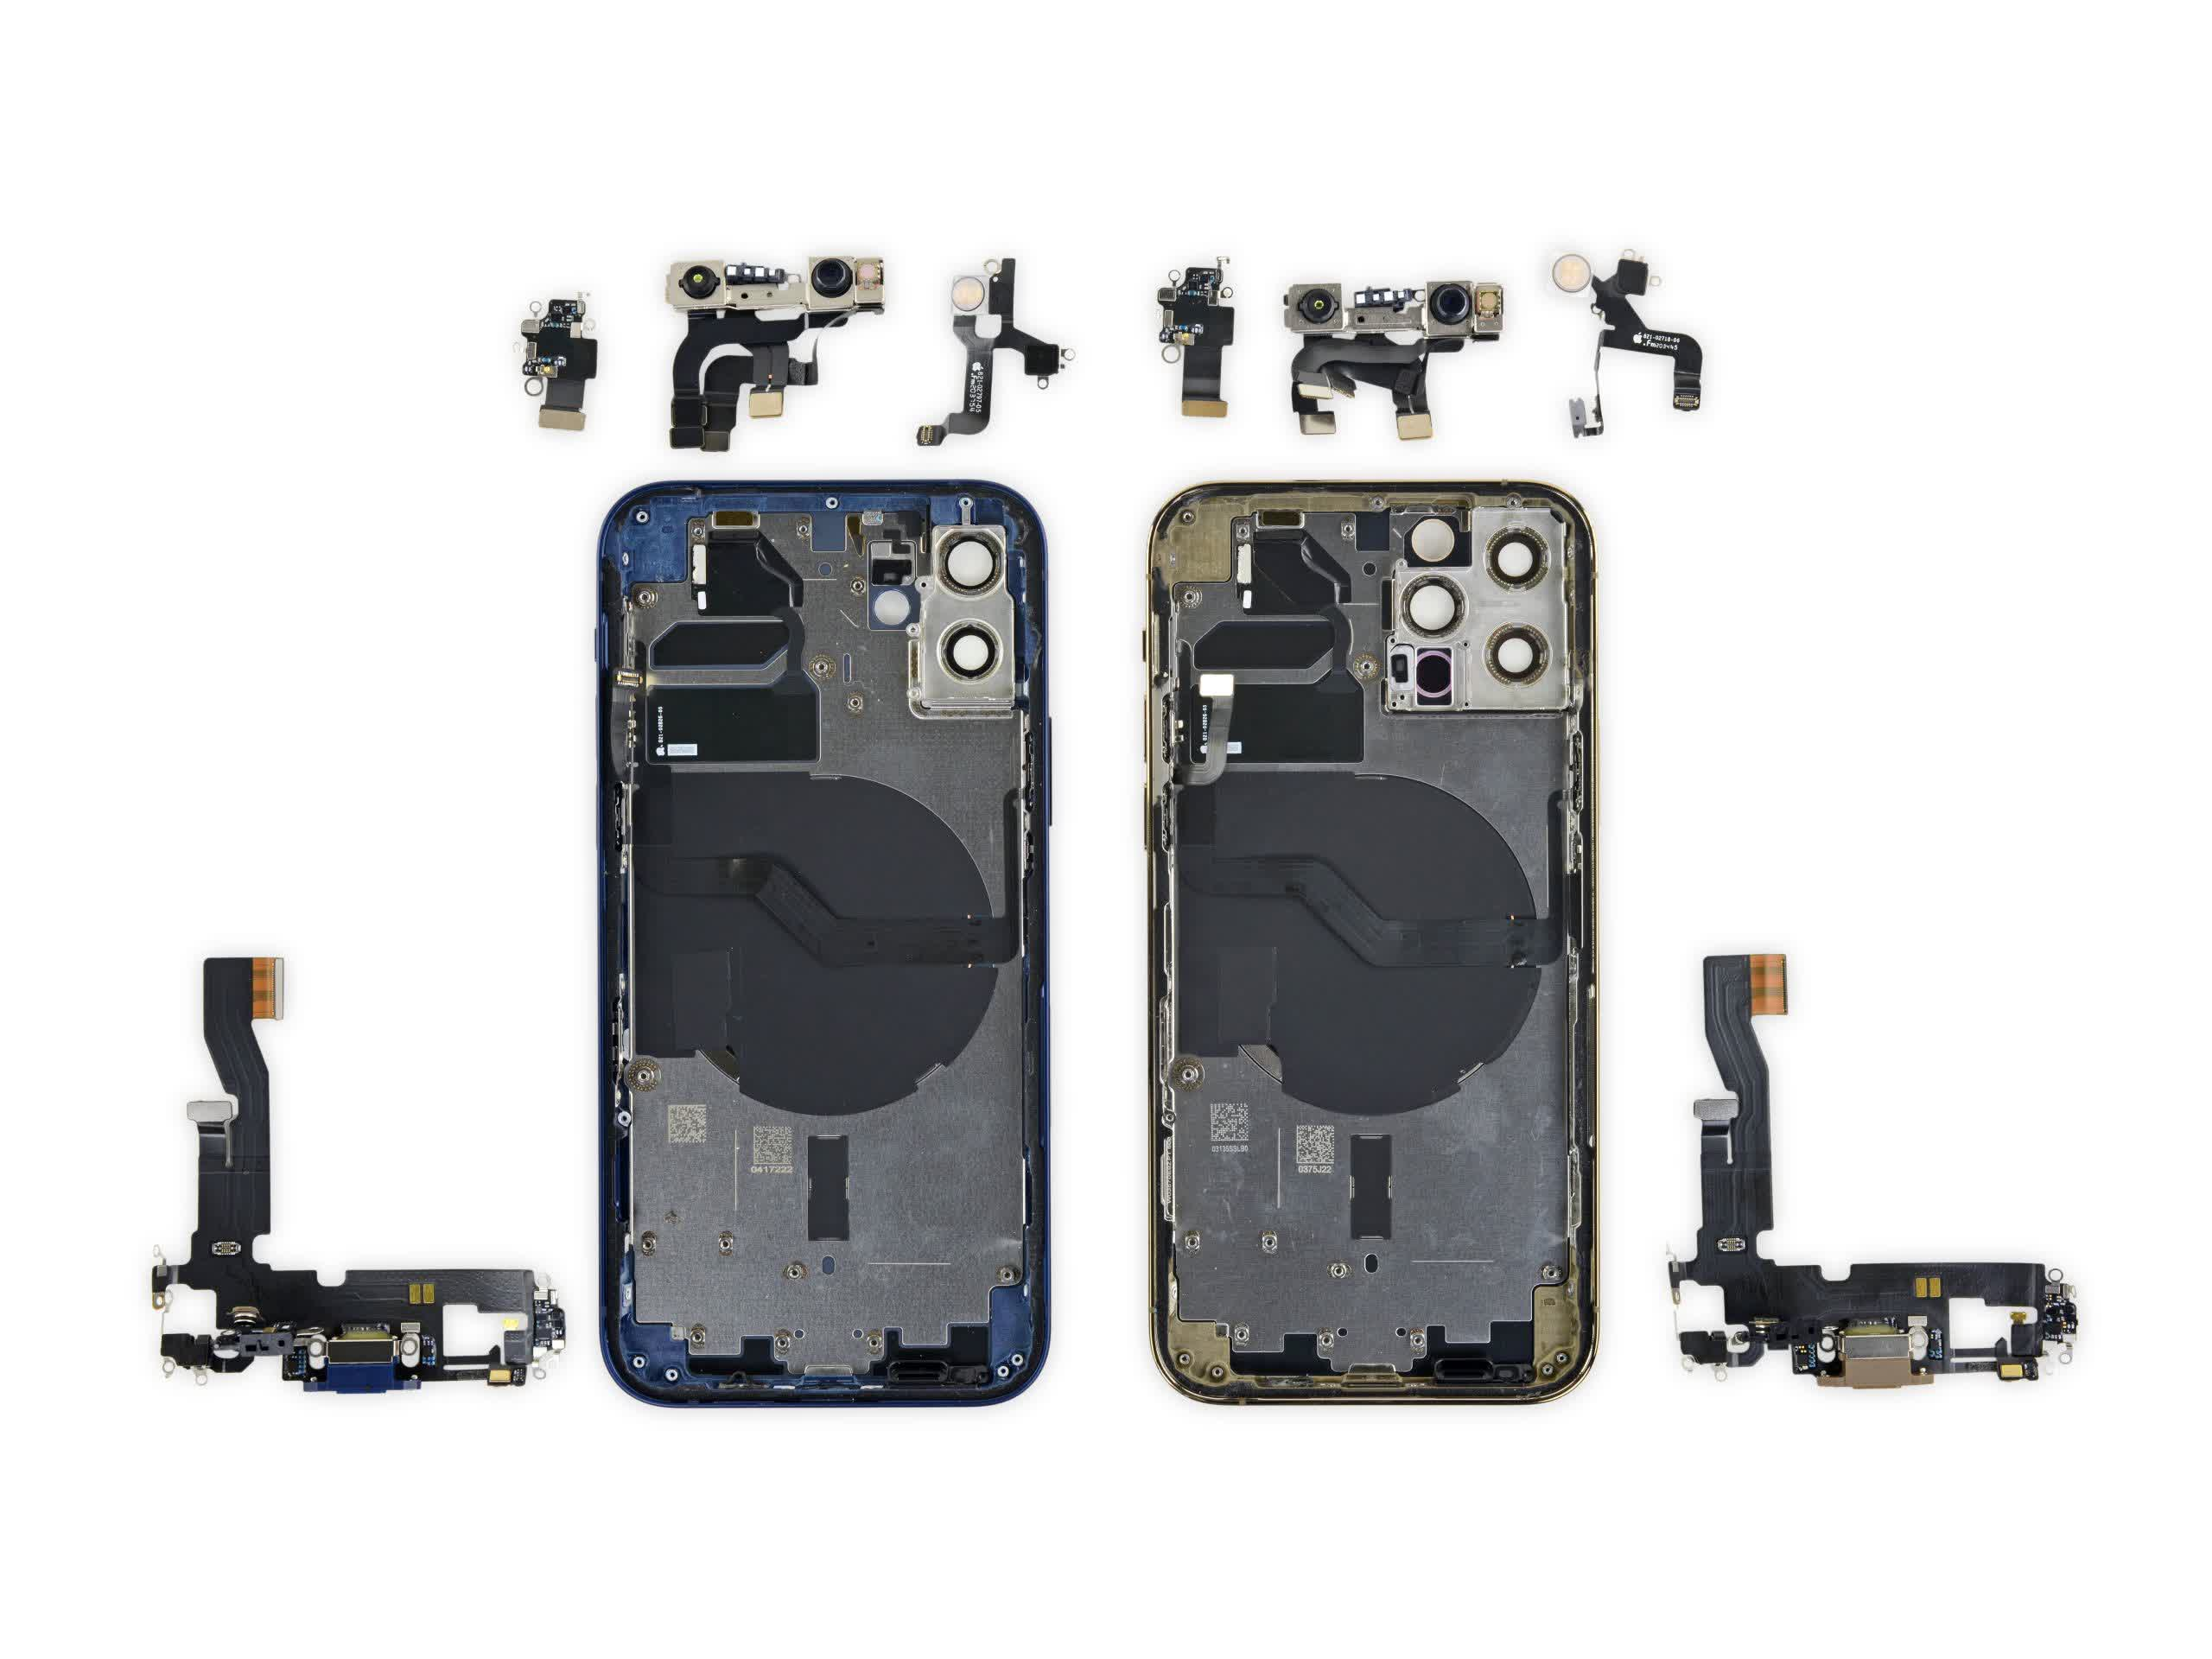 iFixit teardown reveals iPhone 12 and 12 Pro screens are interchangeable